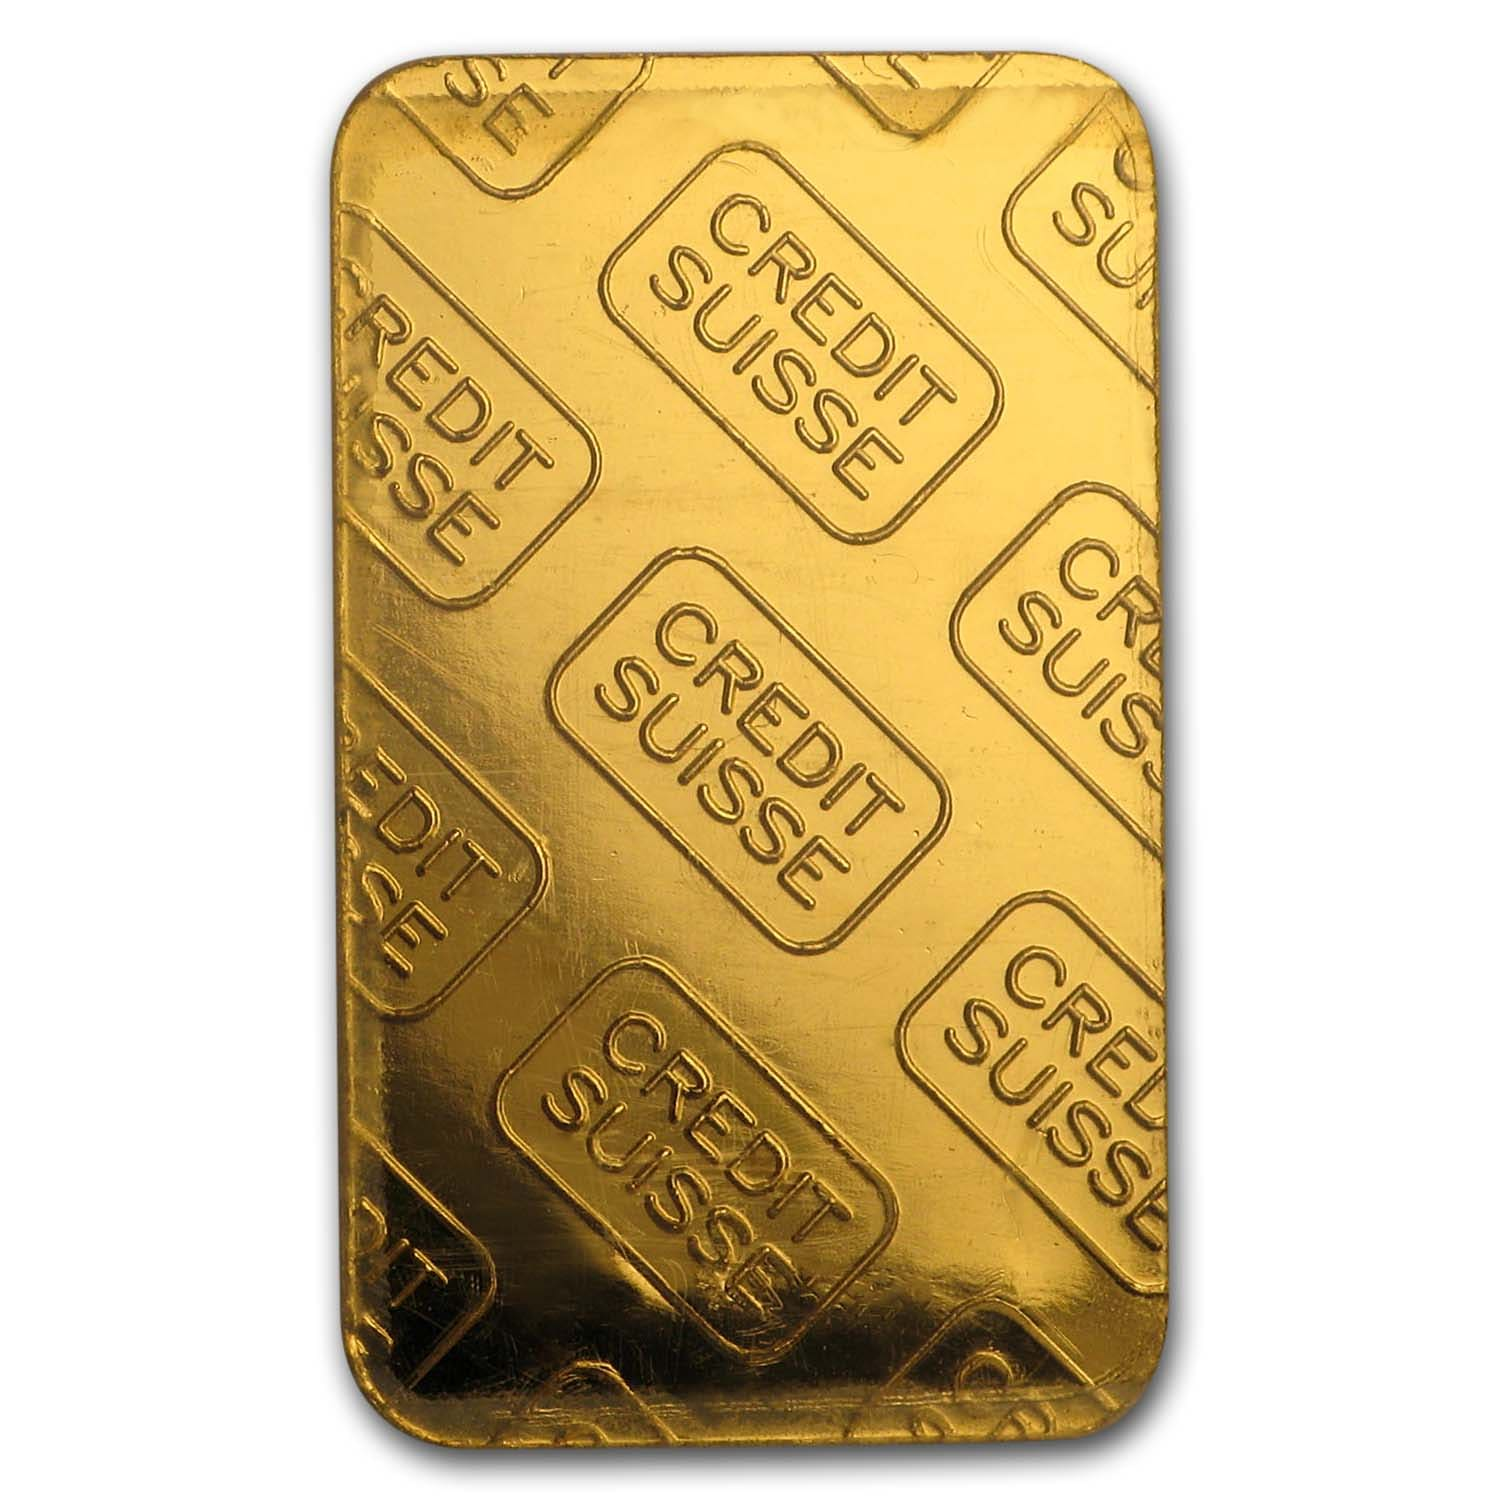 5 gram Gold Bar - Credit Suisse (Vintage Design, In Assay)